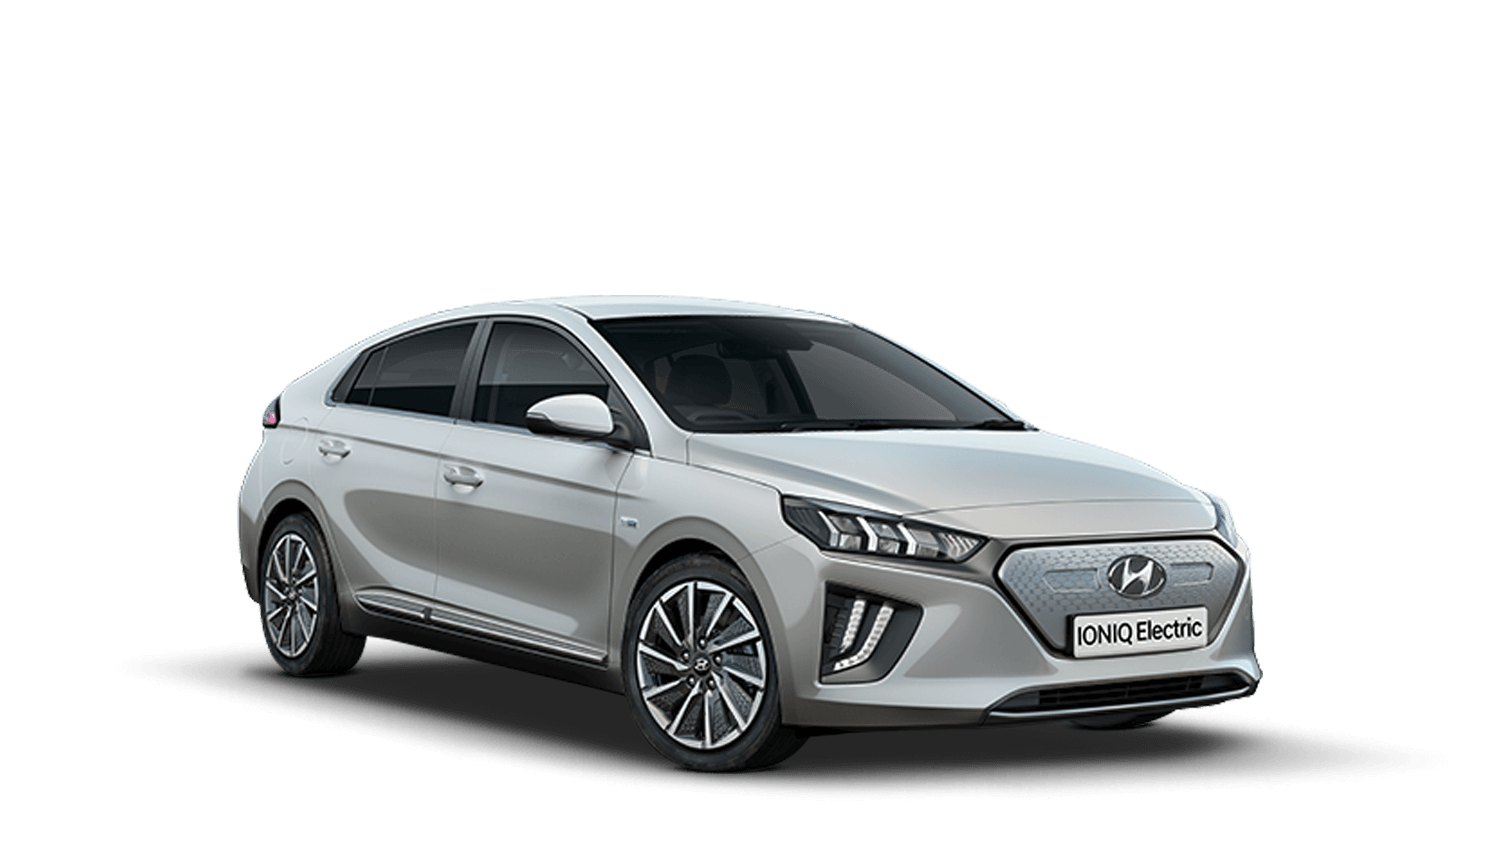 Typhoon Silver Hyundai IONIQ Electric